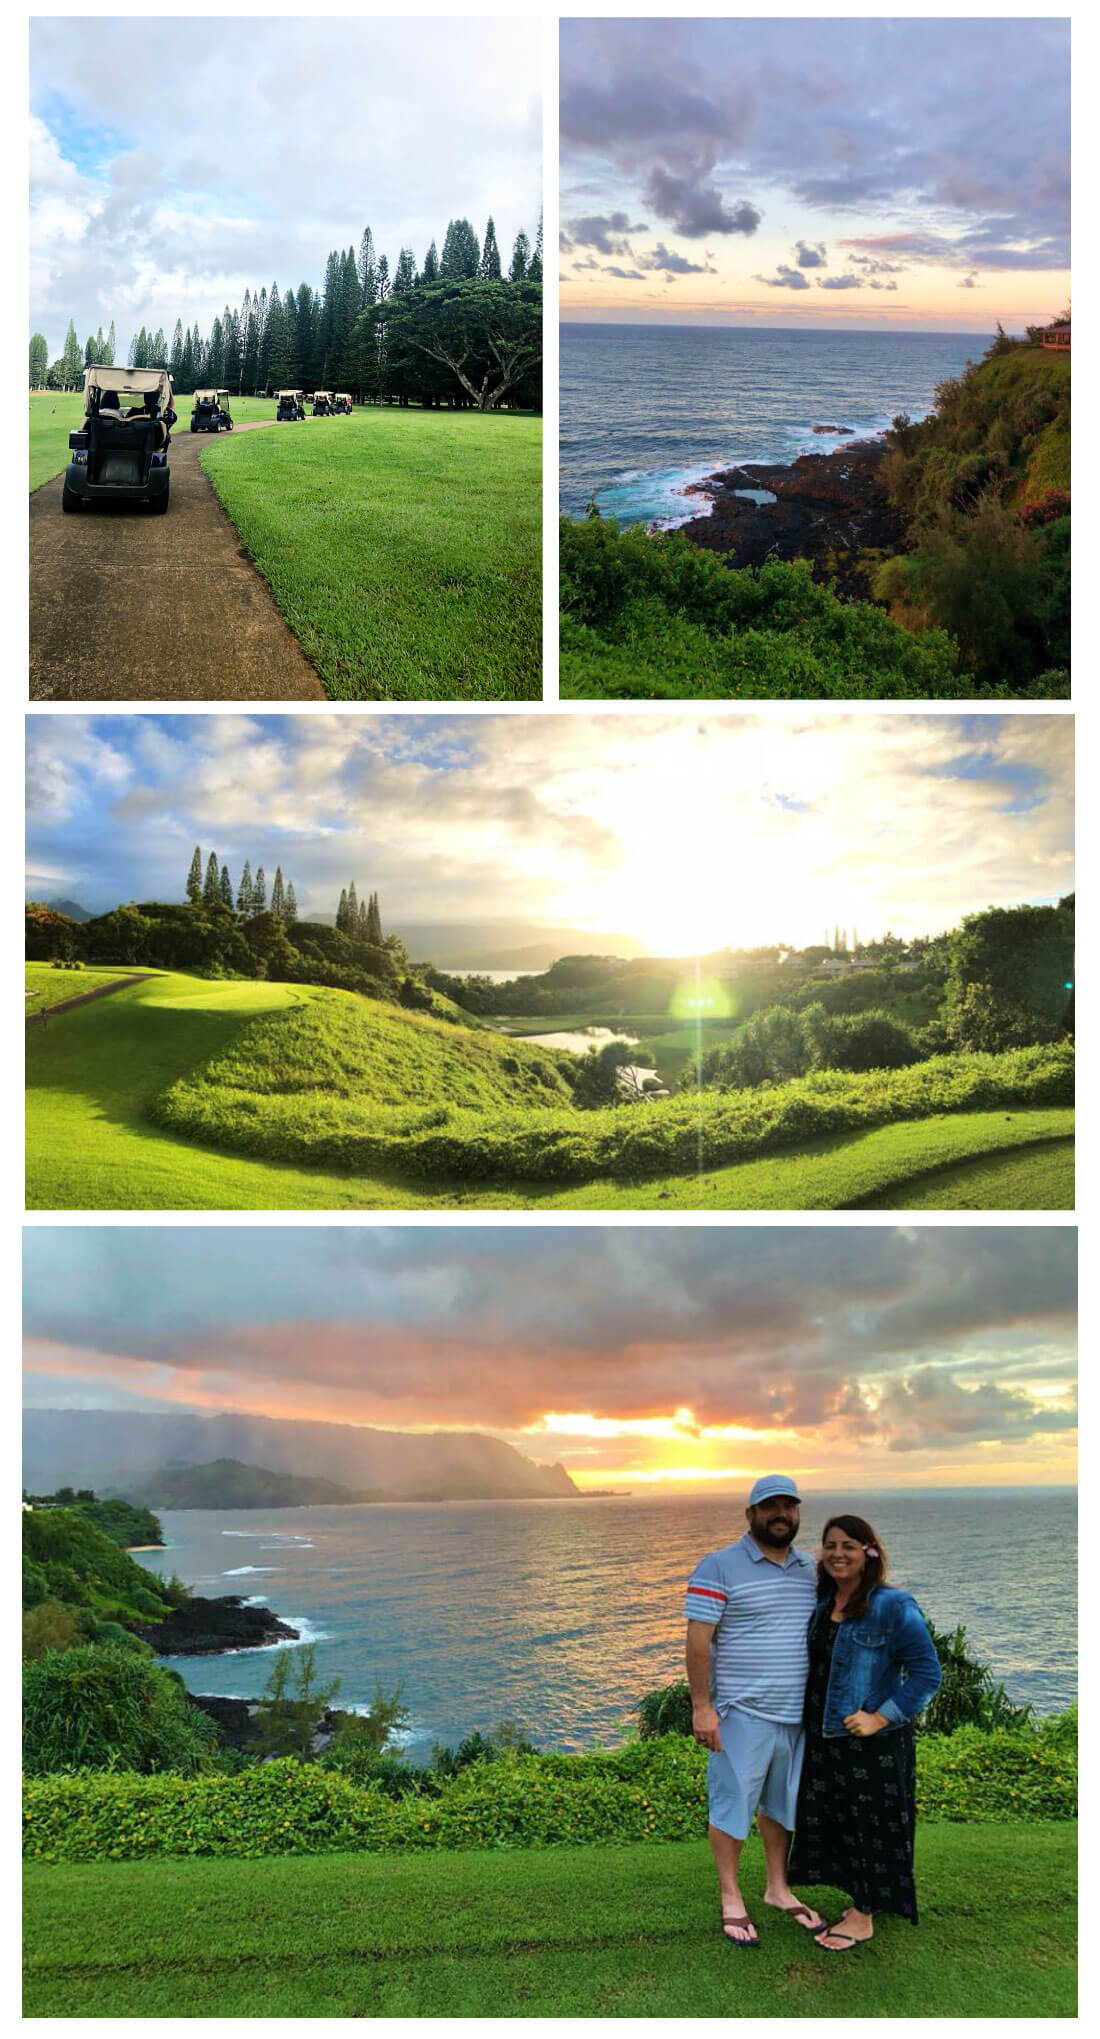 Top Things to Do in Kauai - go on a Sunset Tour with Makai Golf Course